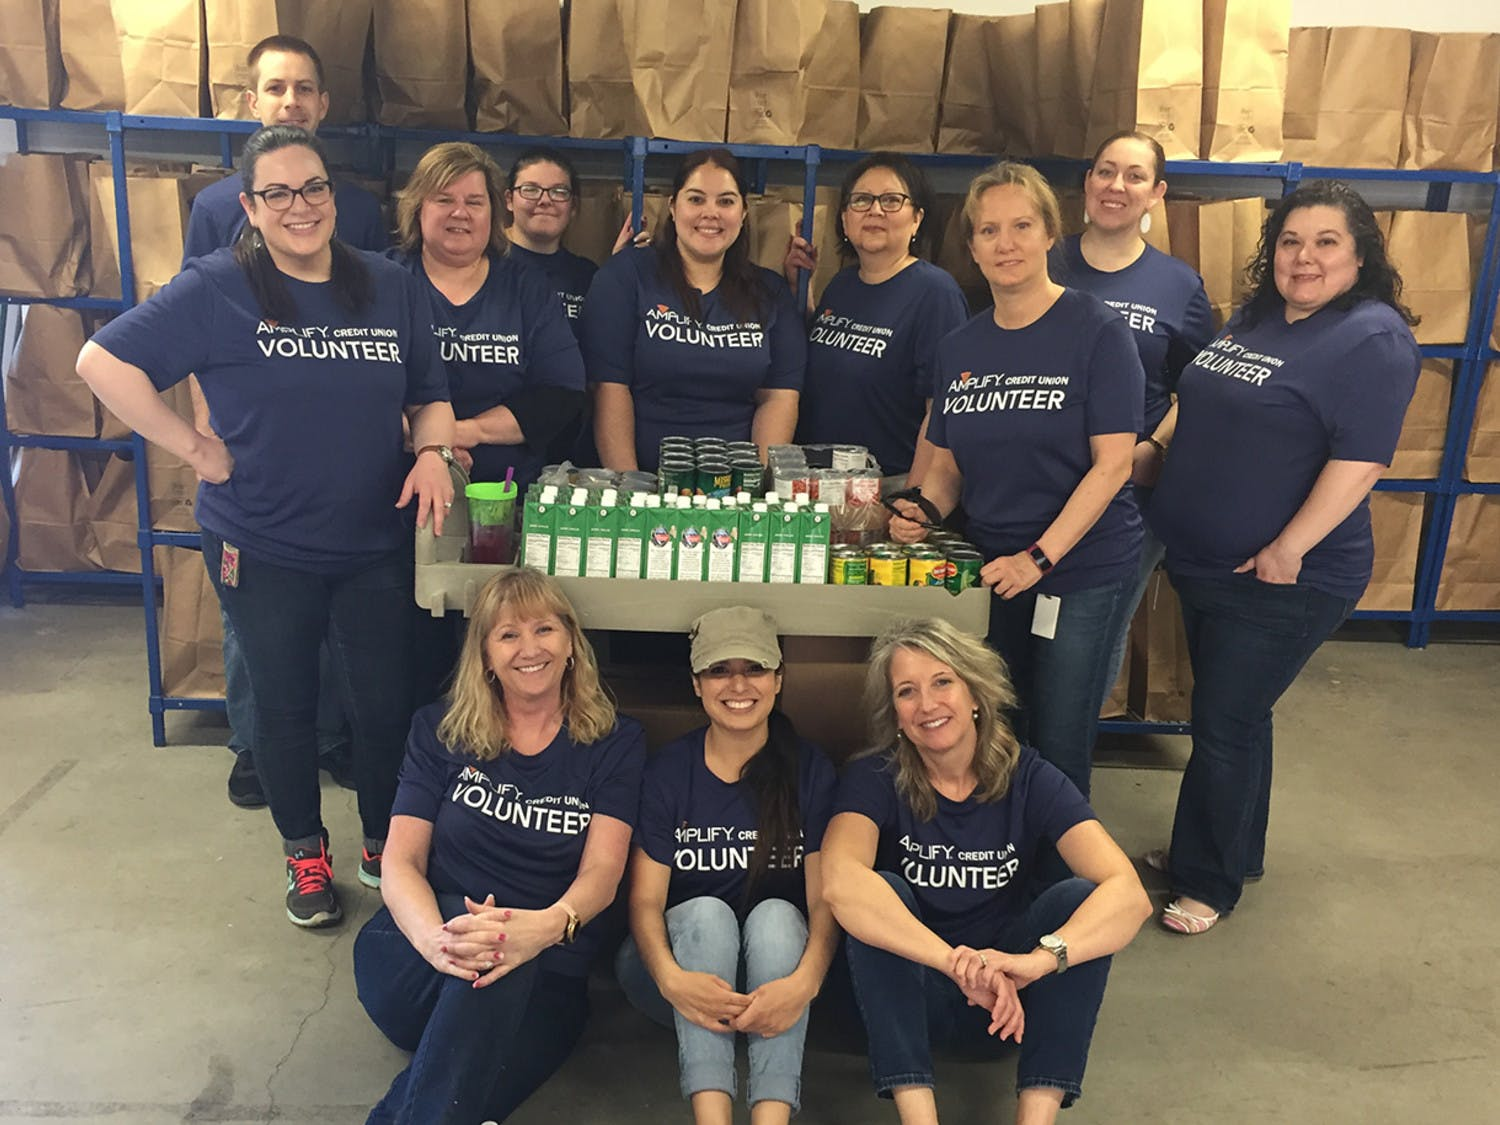 At Meals on Wheels, Amplify volunteers prepare groceries for delivery to Central Texans in need.